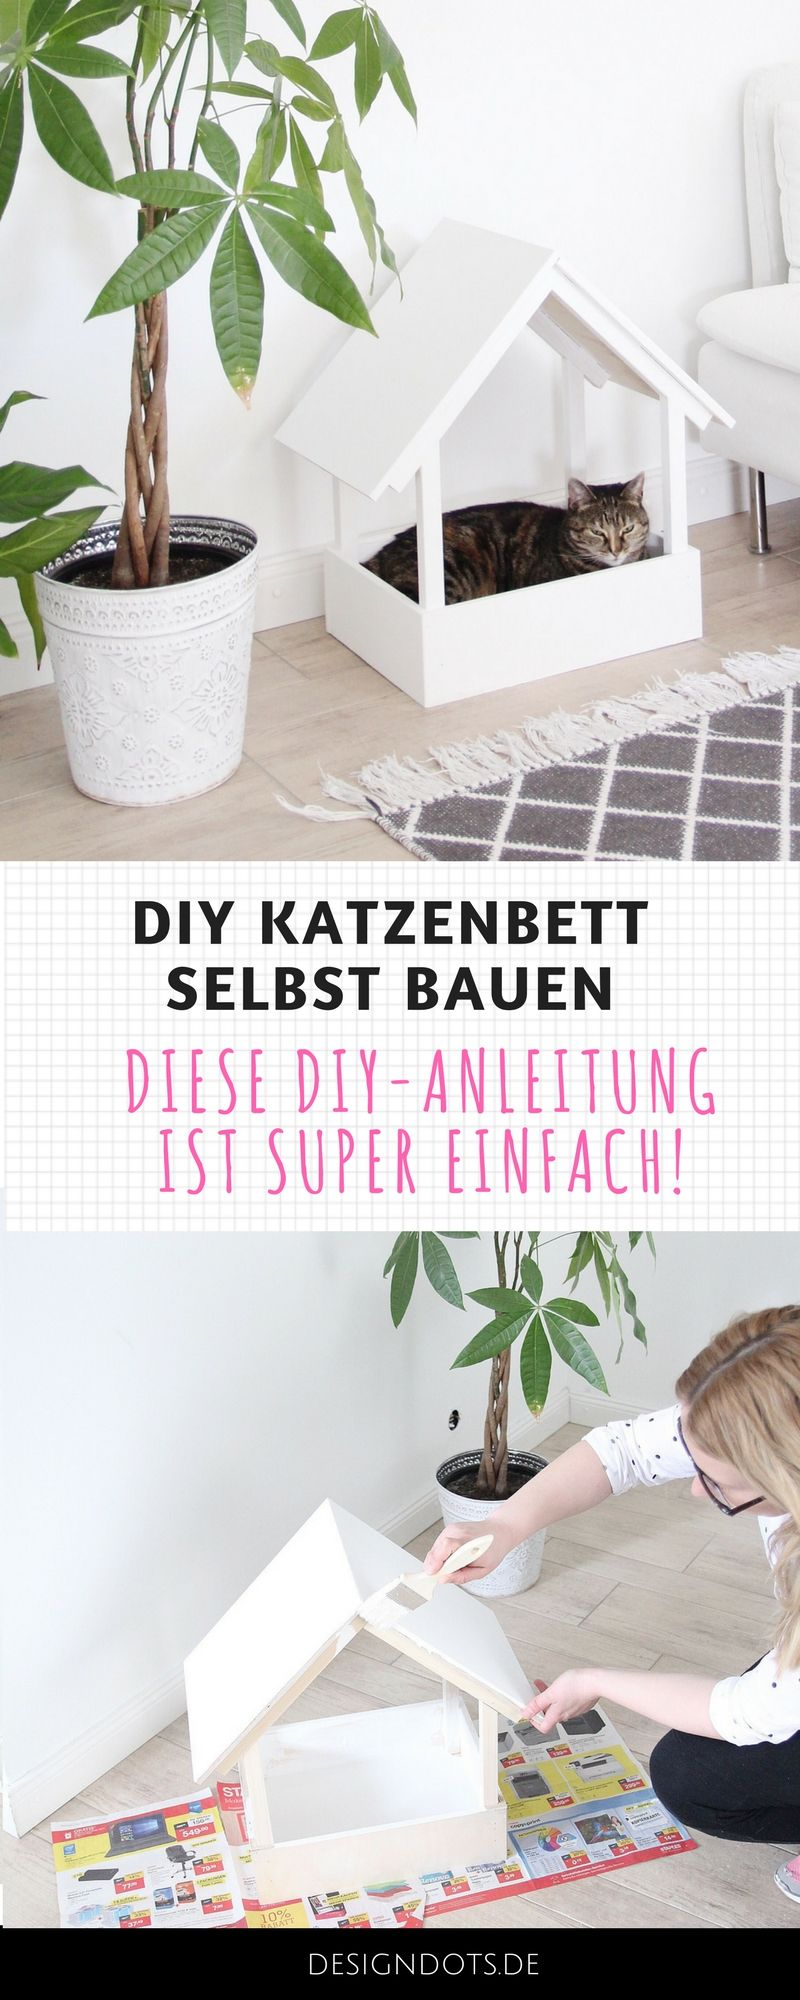 diy stillvolles katzenbett selbst bauen pinterest katzenm bel selber bauen und anleitungen. Black Bedroom Furniture Sets. Home Design Ideas